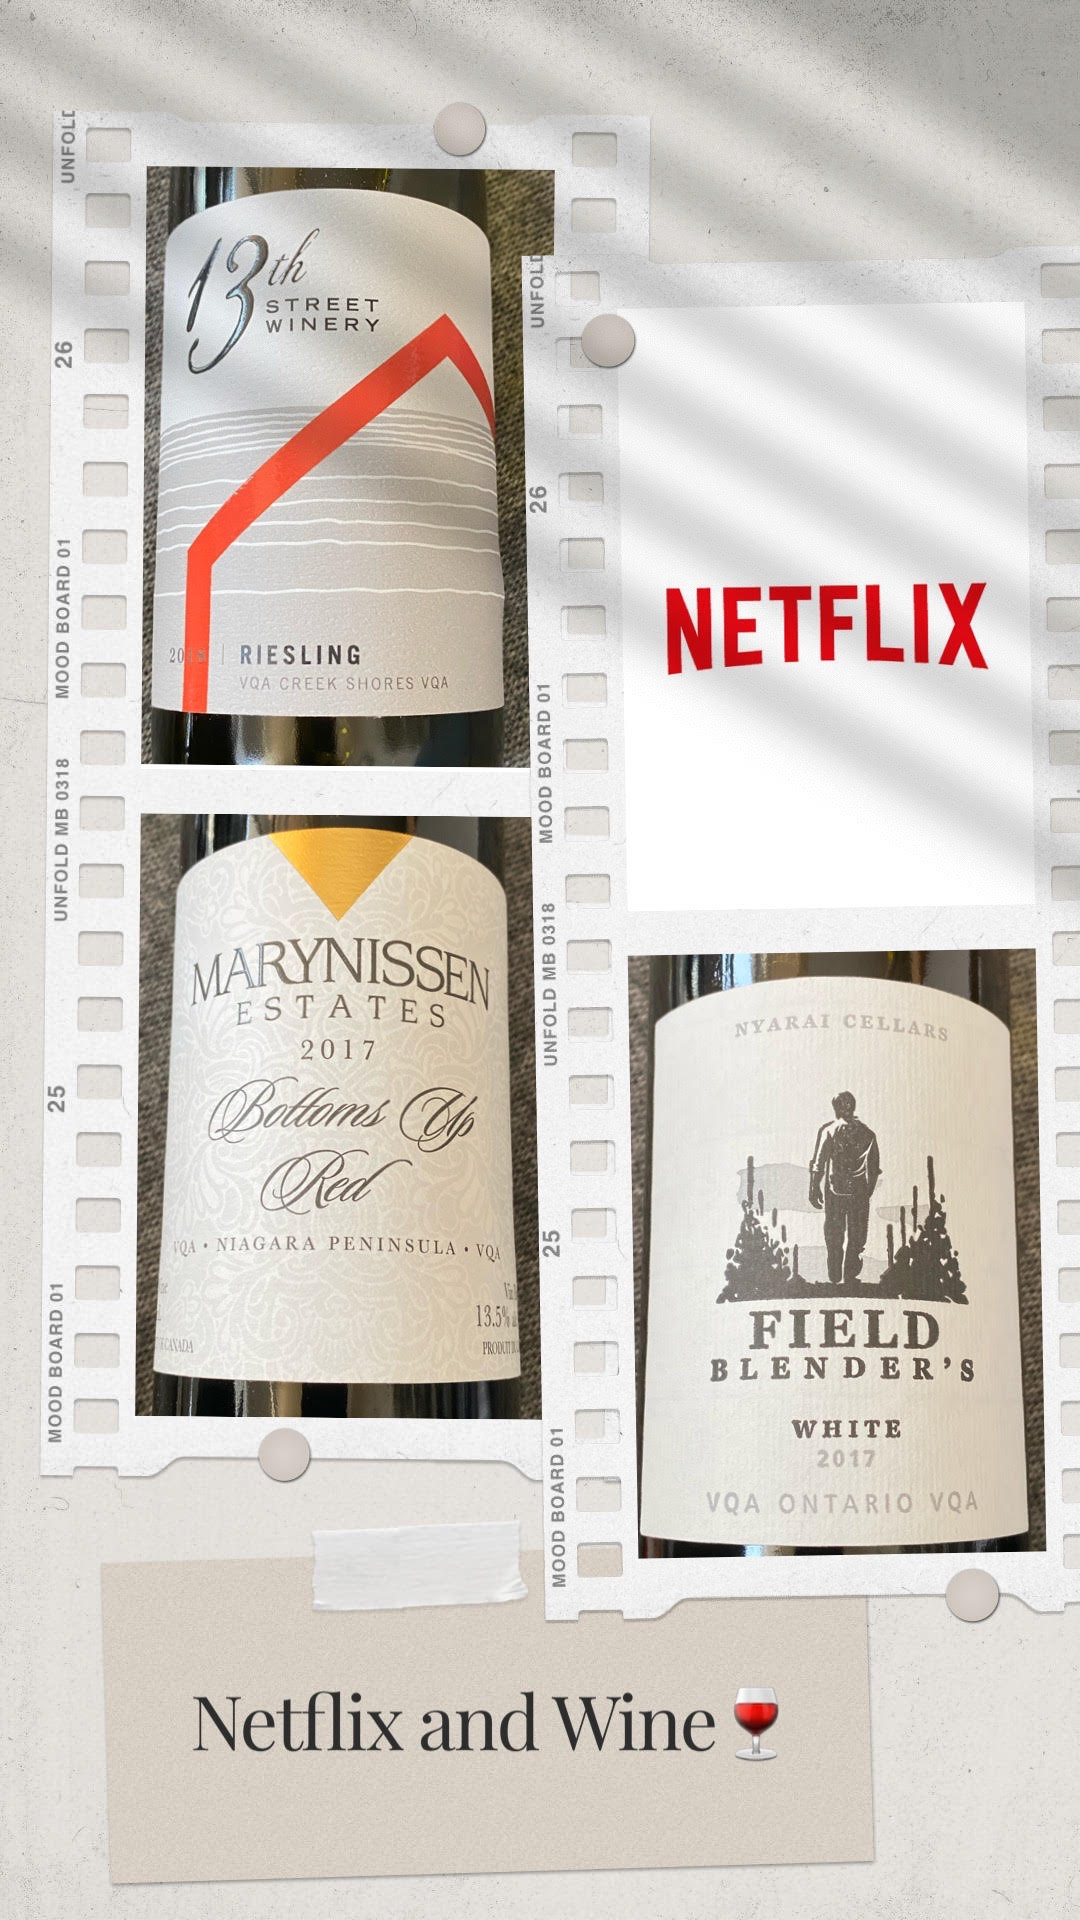 Happy National Wine Day !  Netflix Canada  & Ontario Wine…the perfect pairing!